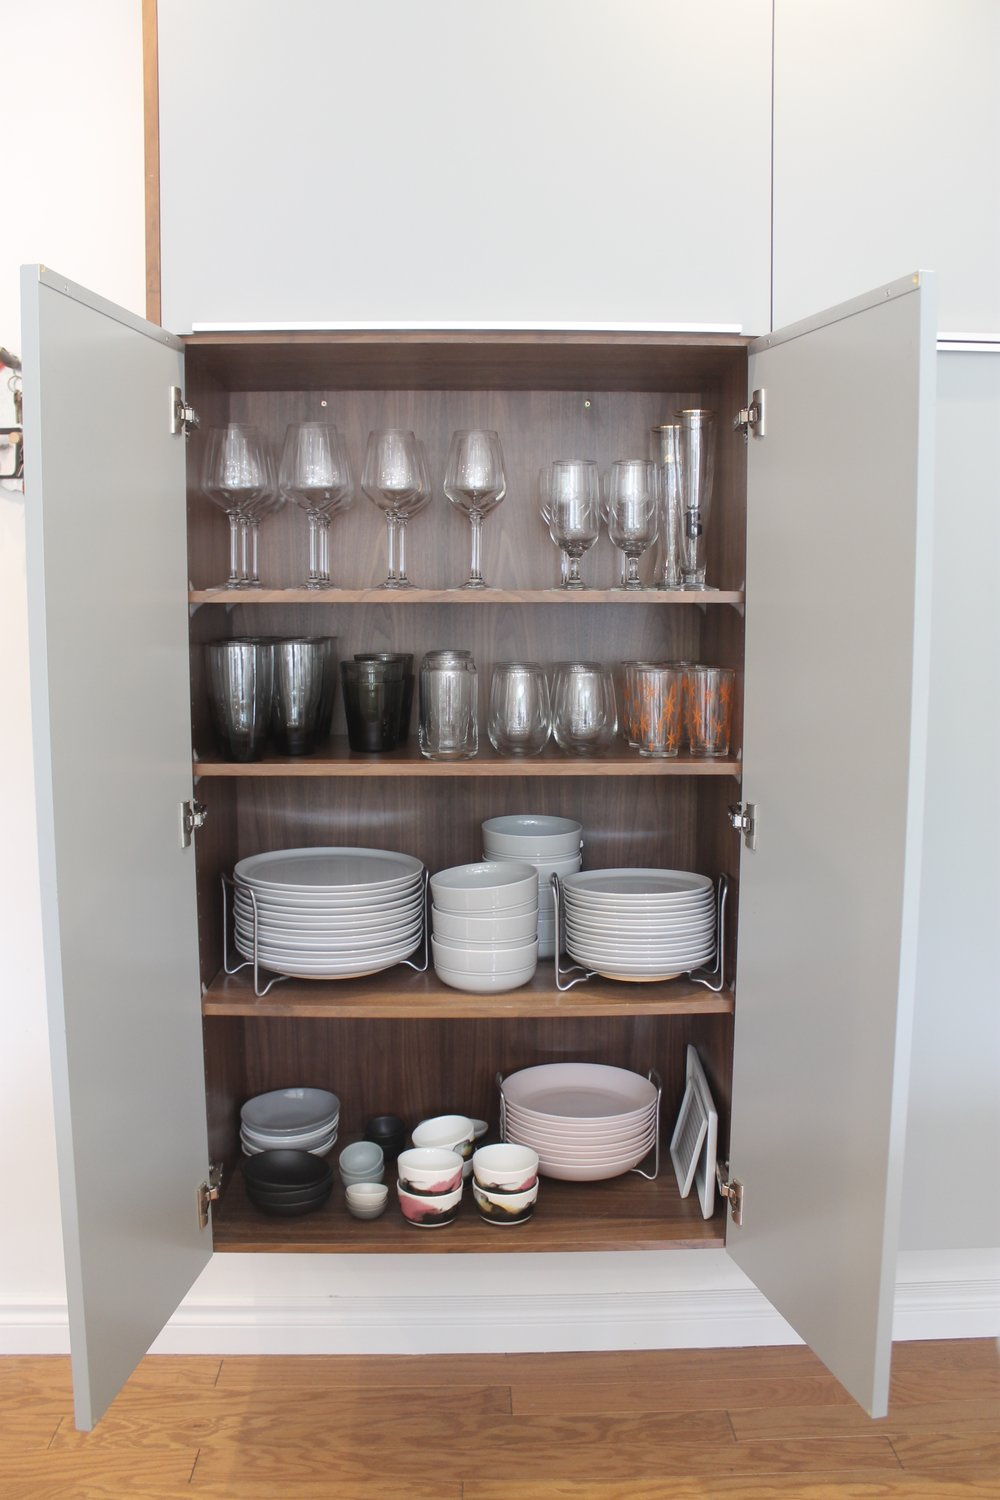 kitchen organization after (home 1)